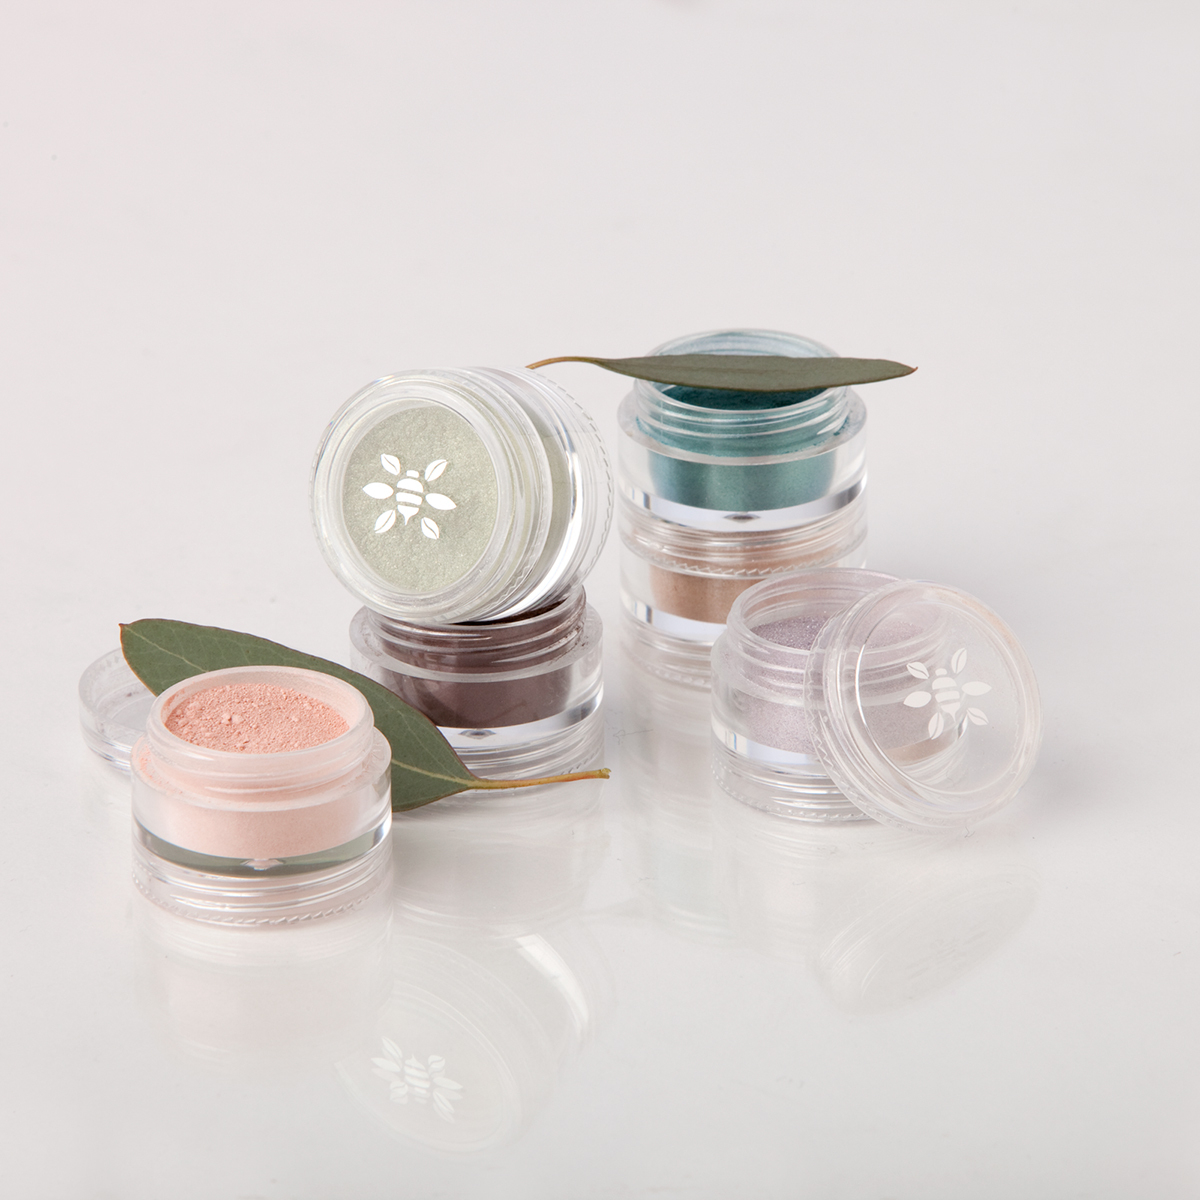 Honeybee Gardens Eye Shadow